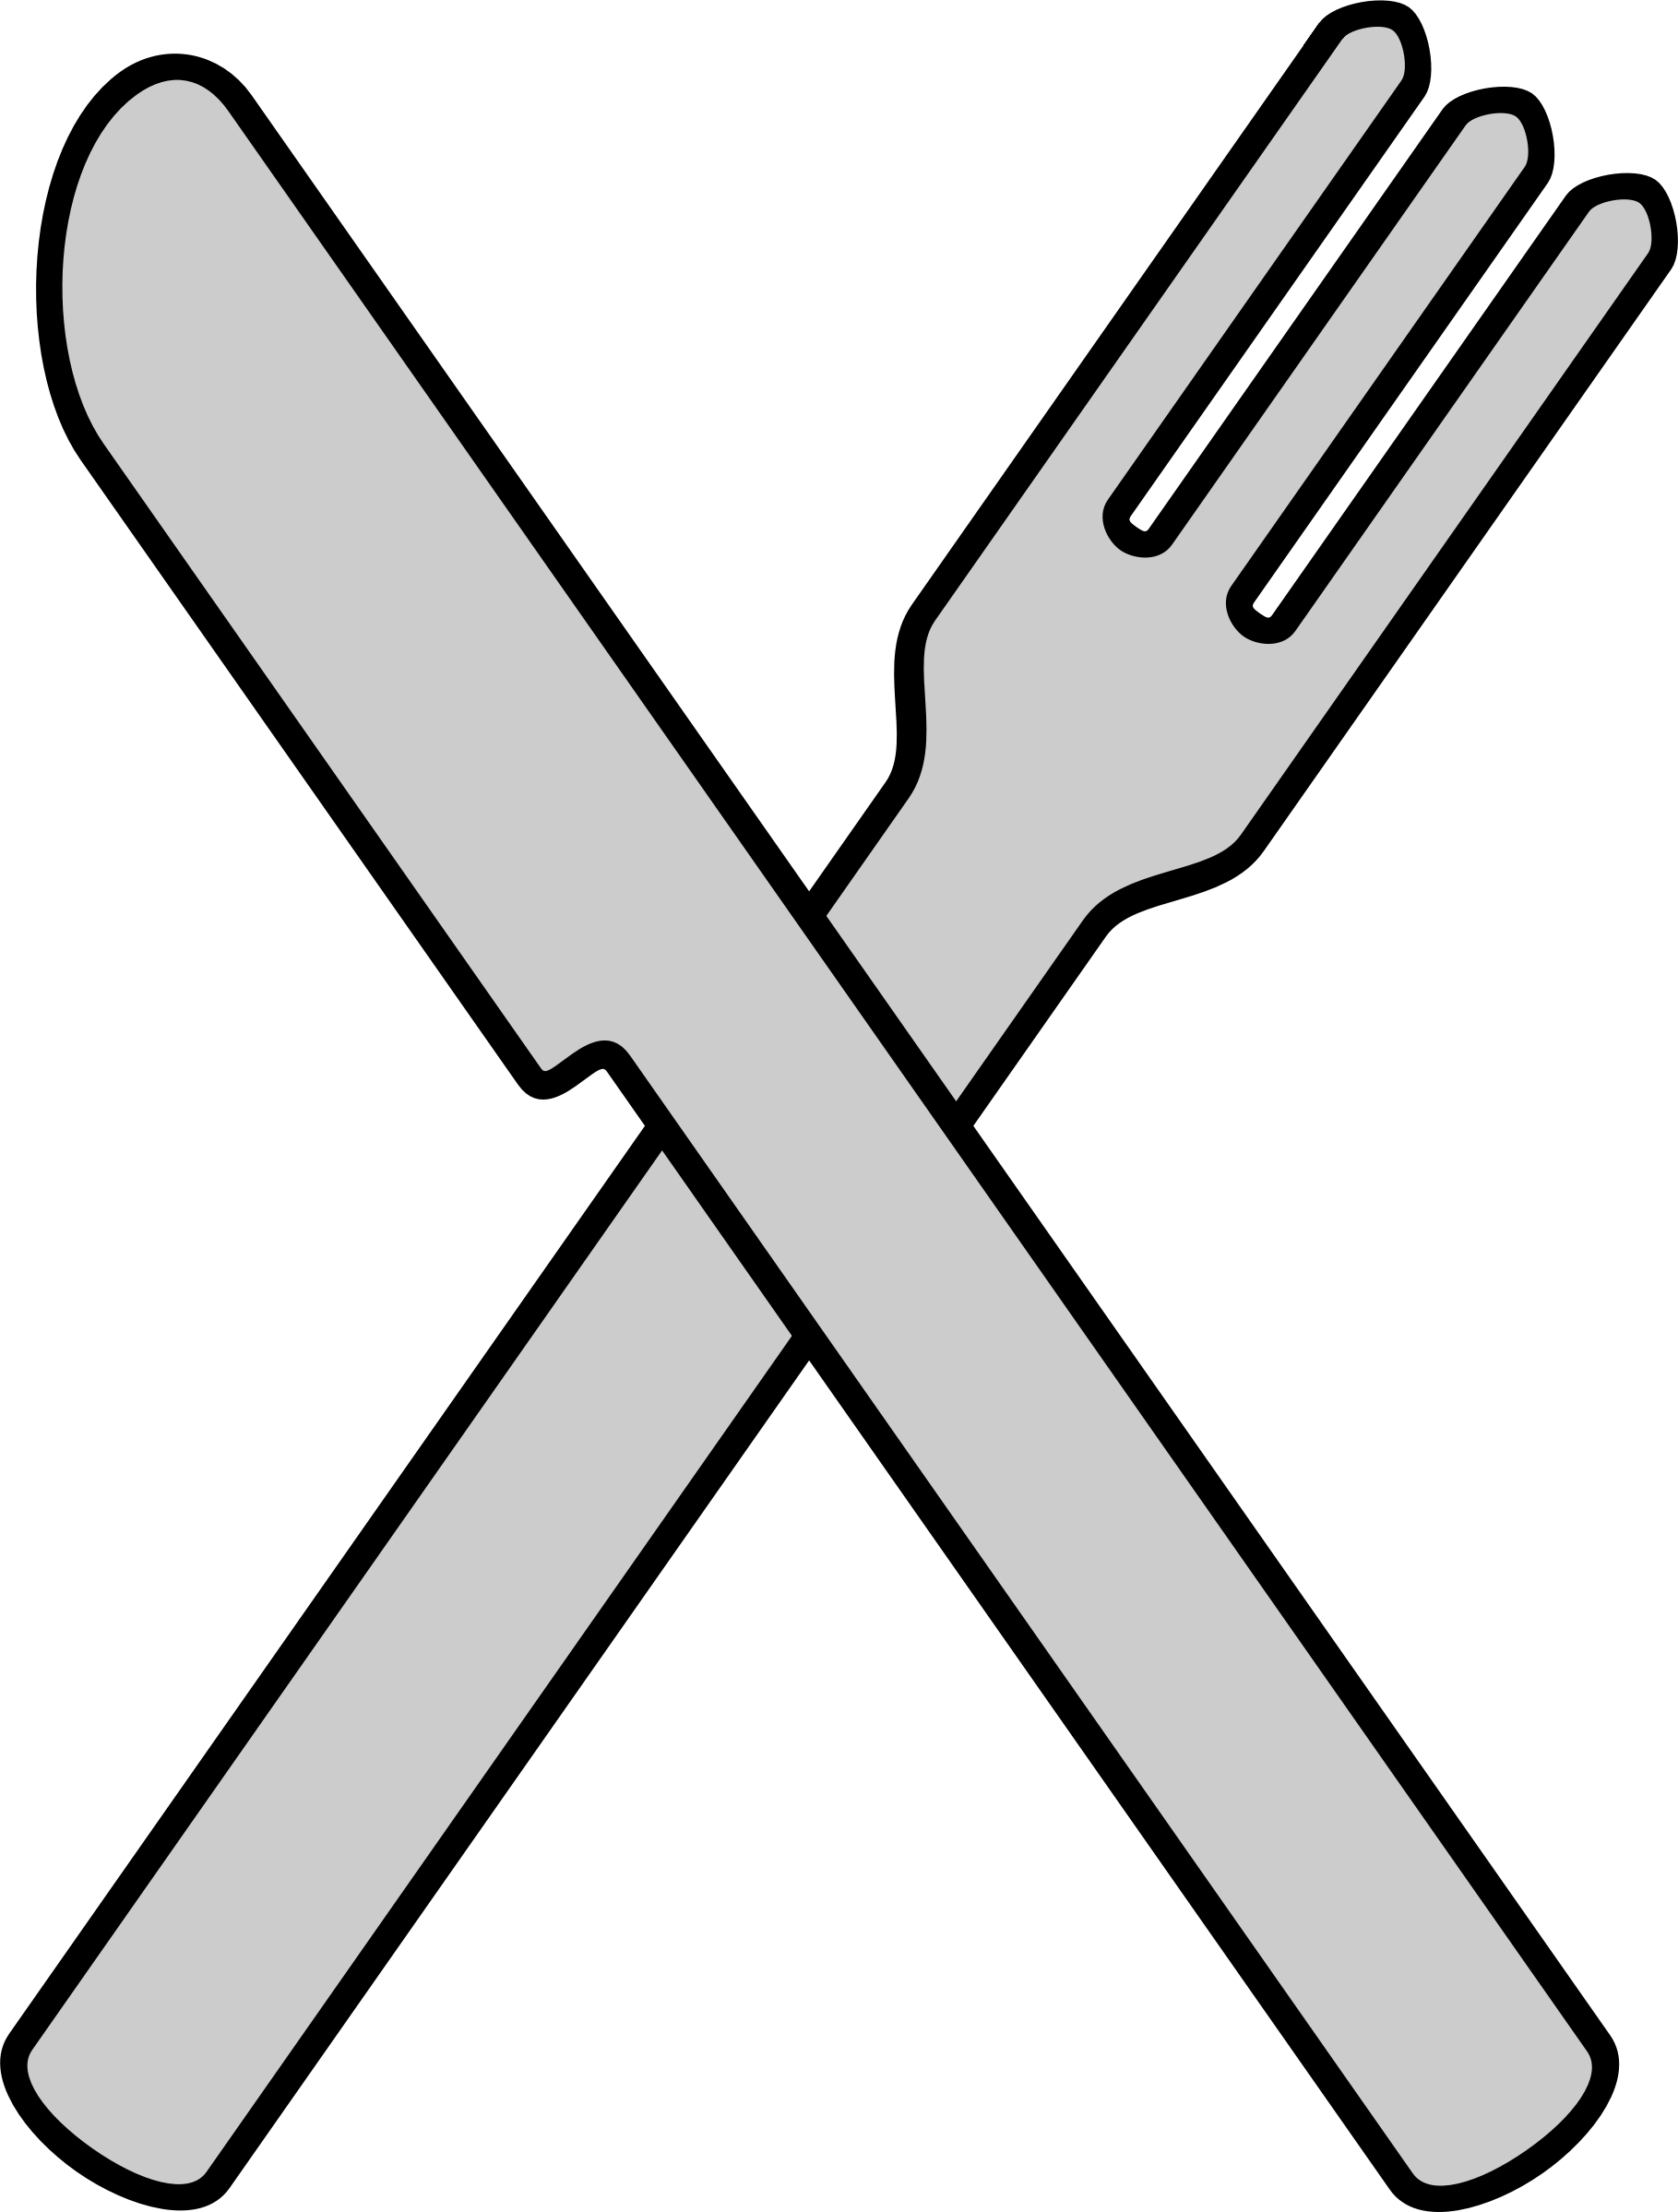 Knife clipart crossed fork. And big image png